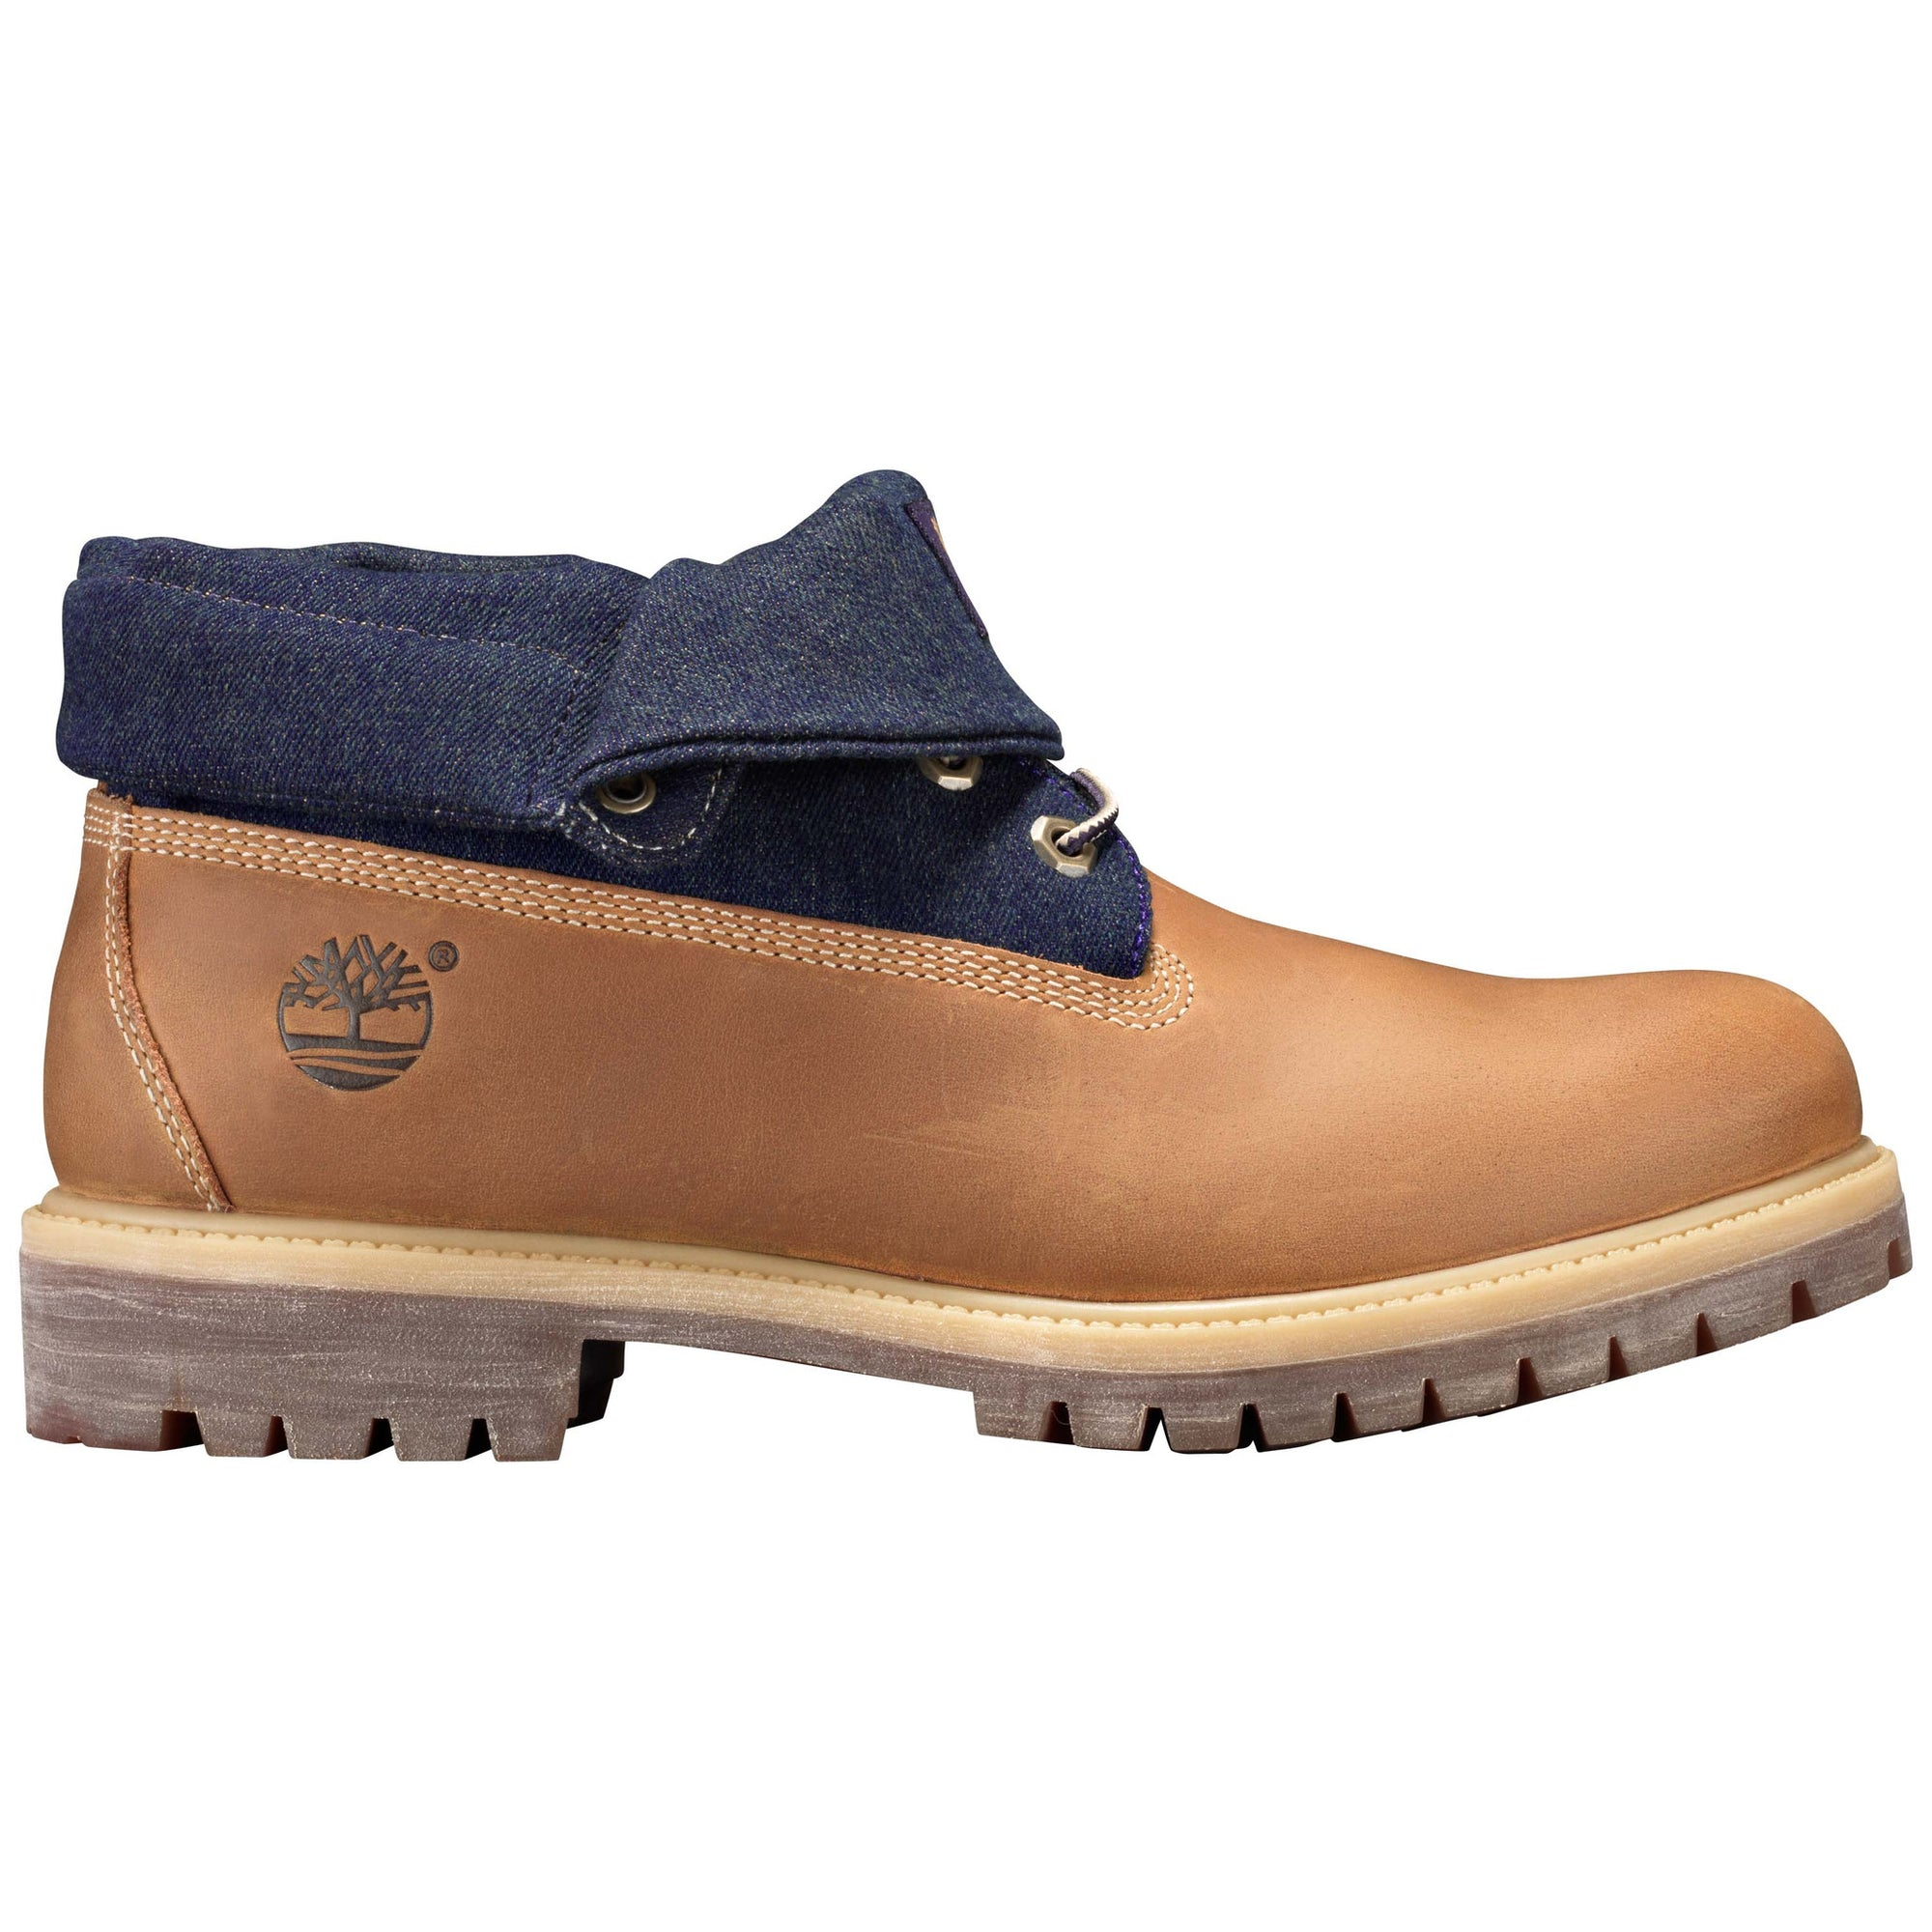 1bf297f06d2b Timberland Icon Roll Top Fabric Premium Mens Boot (Wheat) limited - Top  brand shoes